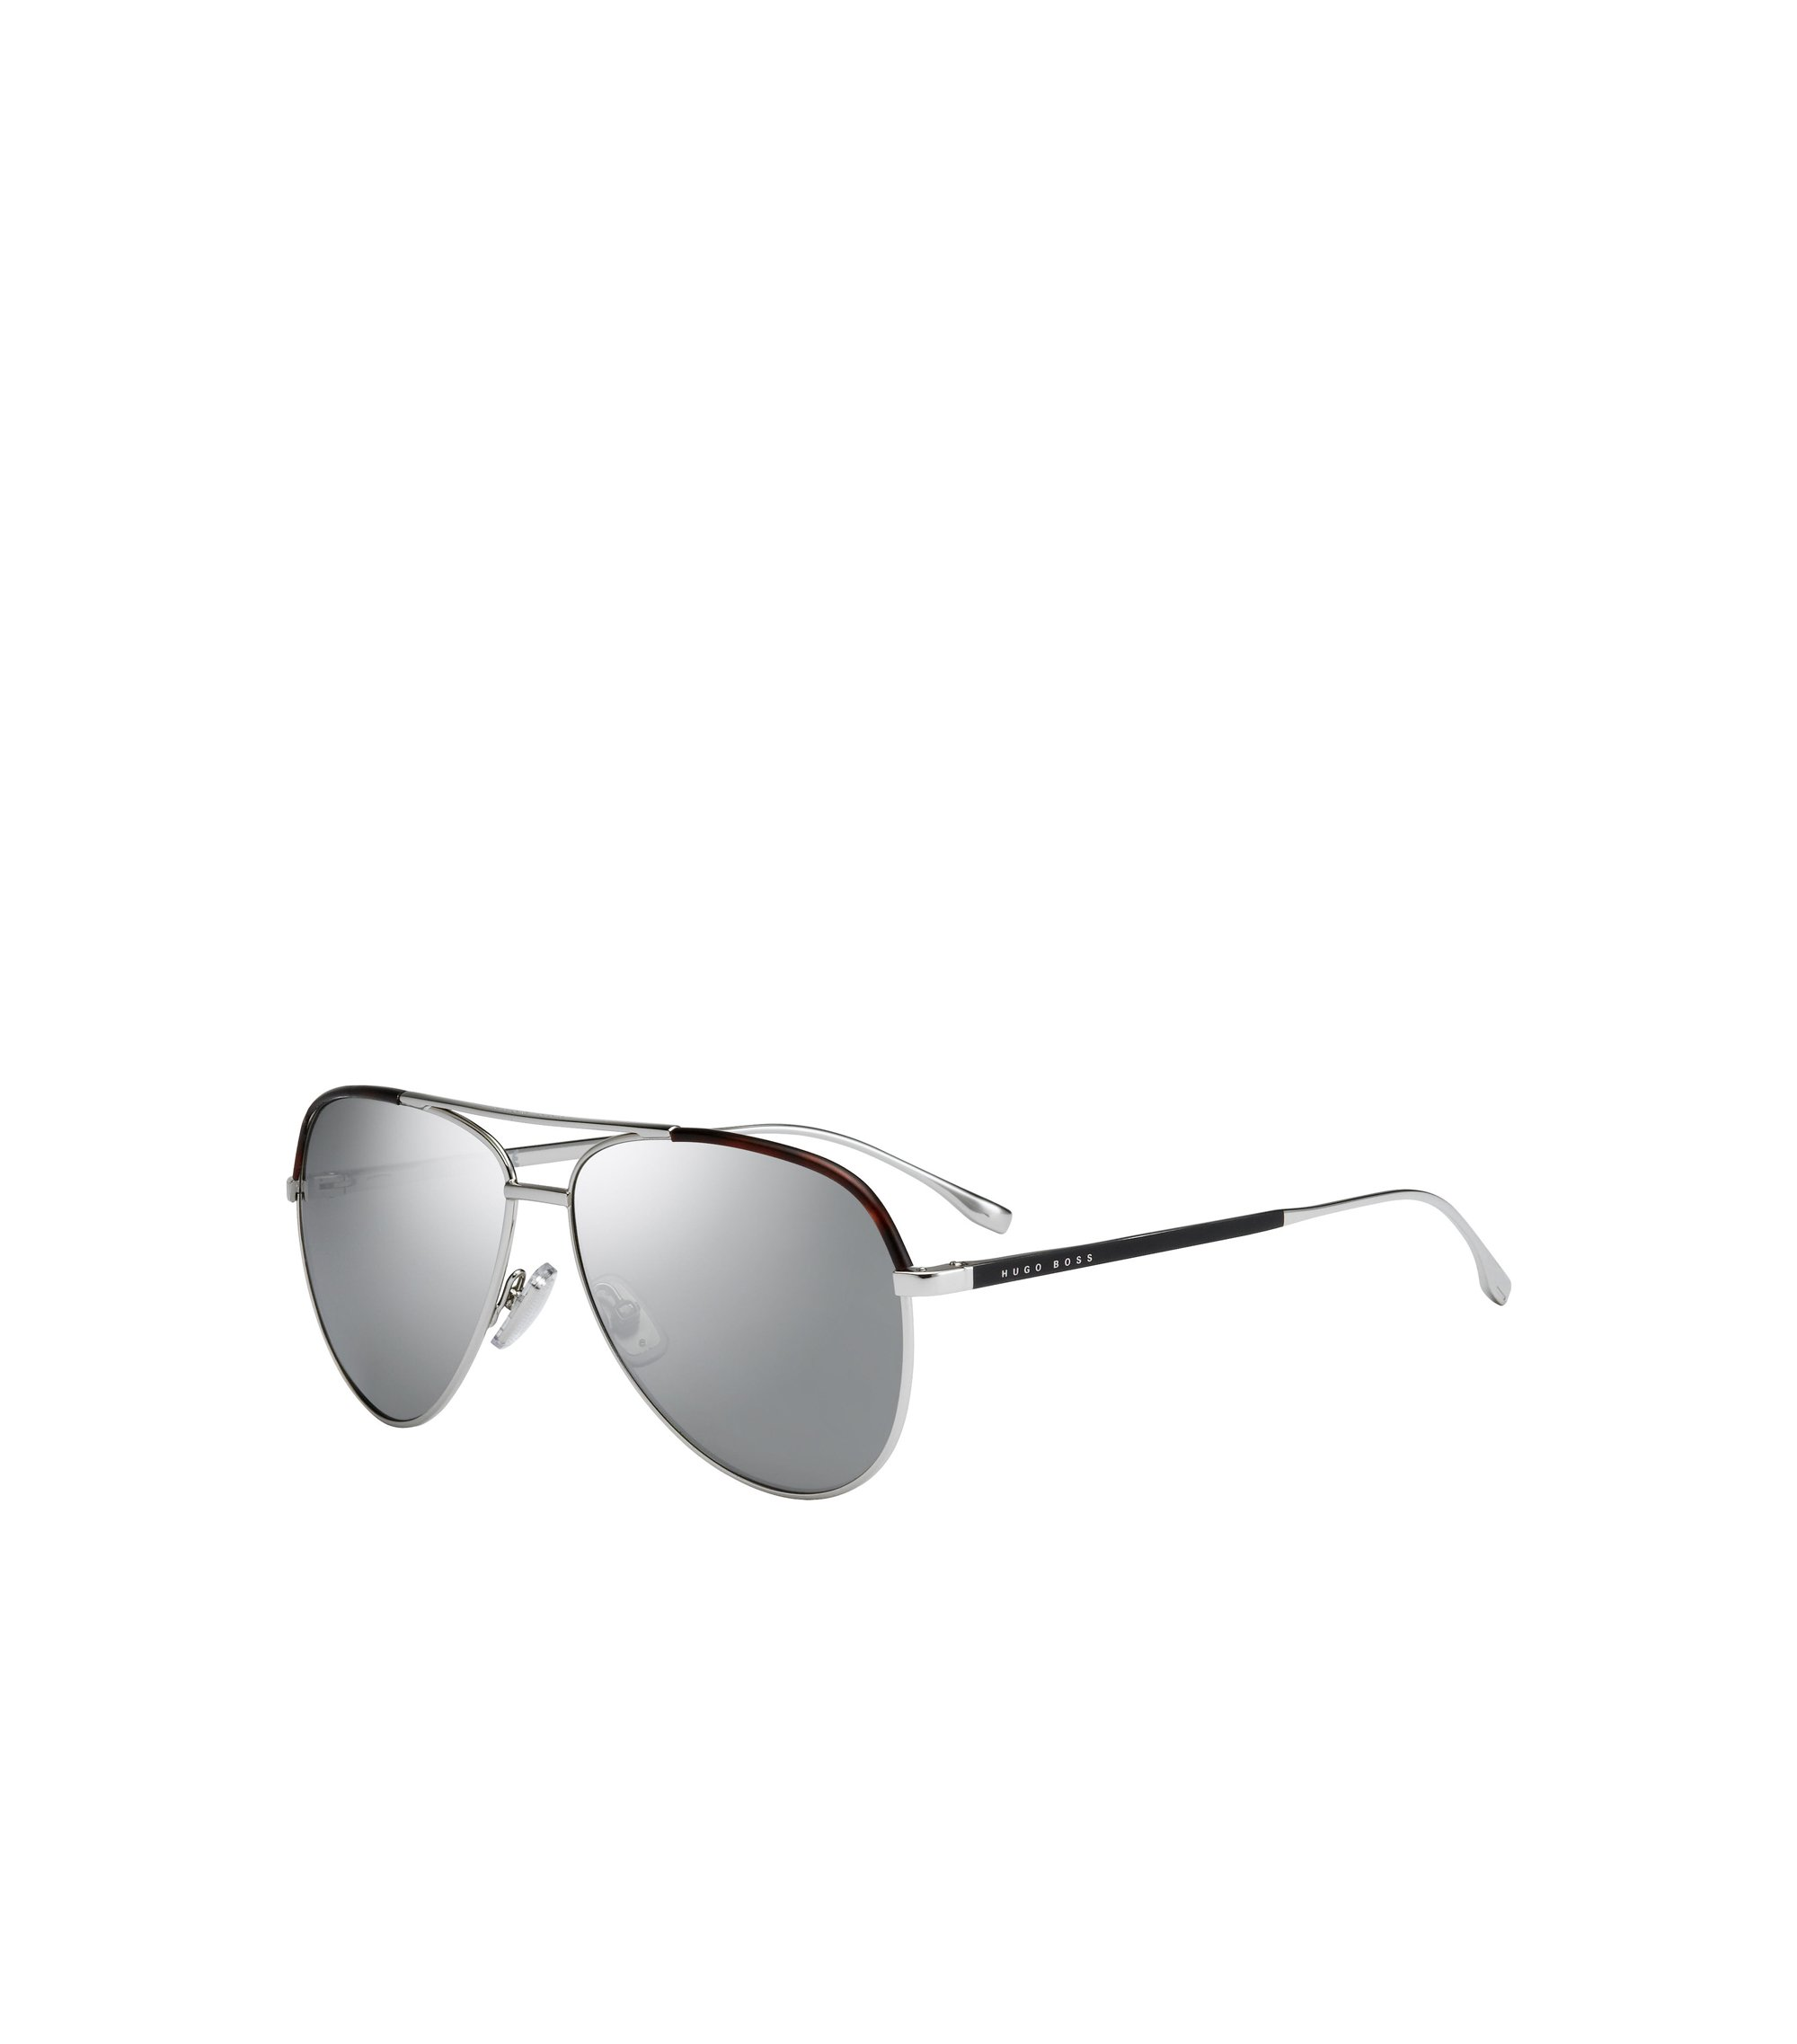 Sliver Mirror Lens Aviator Sunglasses | BOSS 0782S, Assorted-Pre-Pack